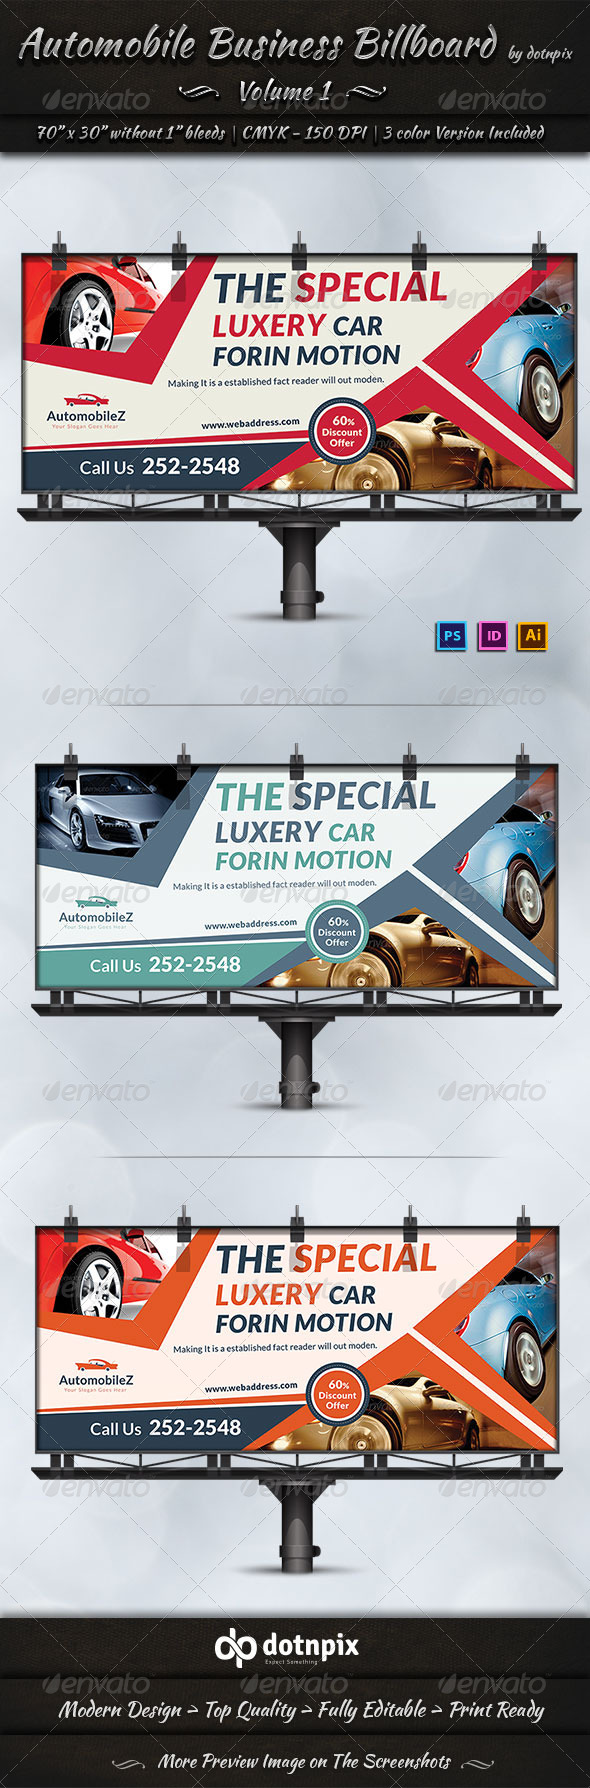 Automobile Business Billboard | Volume 1 - Signage Print Templates